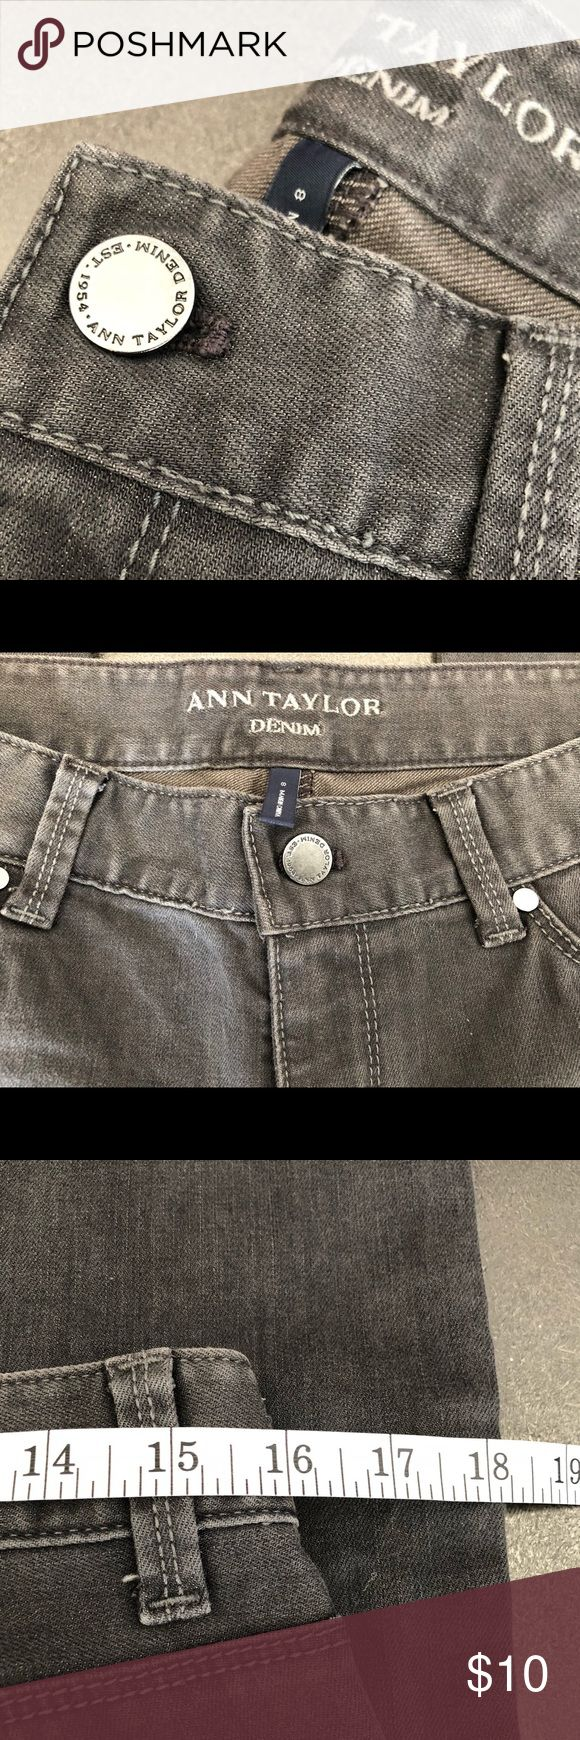 Ann Taylor Boot Cut Denim Jeans These grey Ann Taylor denim boot cut jeans are a break from the blue denim that resides in many wardrobes. Featuring silver hardware and two front  back pockets with a 32 inch inseam. These soft beauties have been worn less than 3 times and can be worn with sweaters, blouses, blazers, fitted tees and everything in between. Will steam iron prior to shipping. Priced to sell all serious reasonable offers accepted. No low ballers please. Ann Taylor Jeans Boot Cut